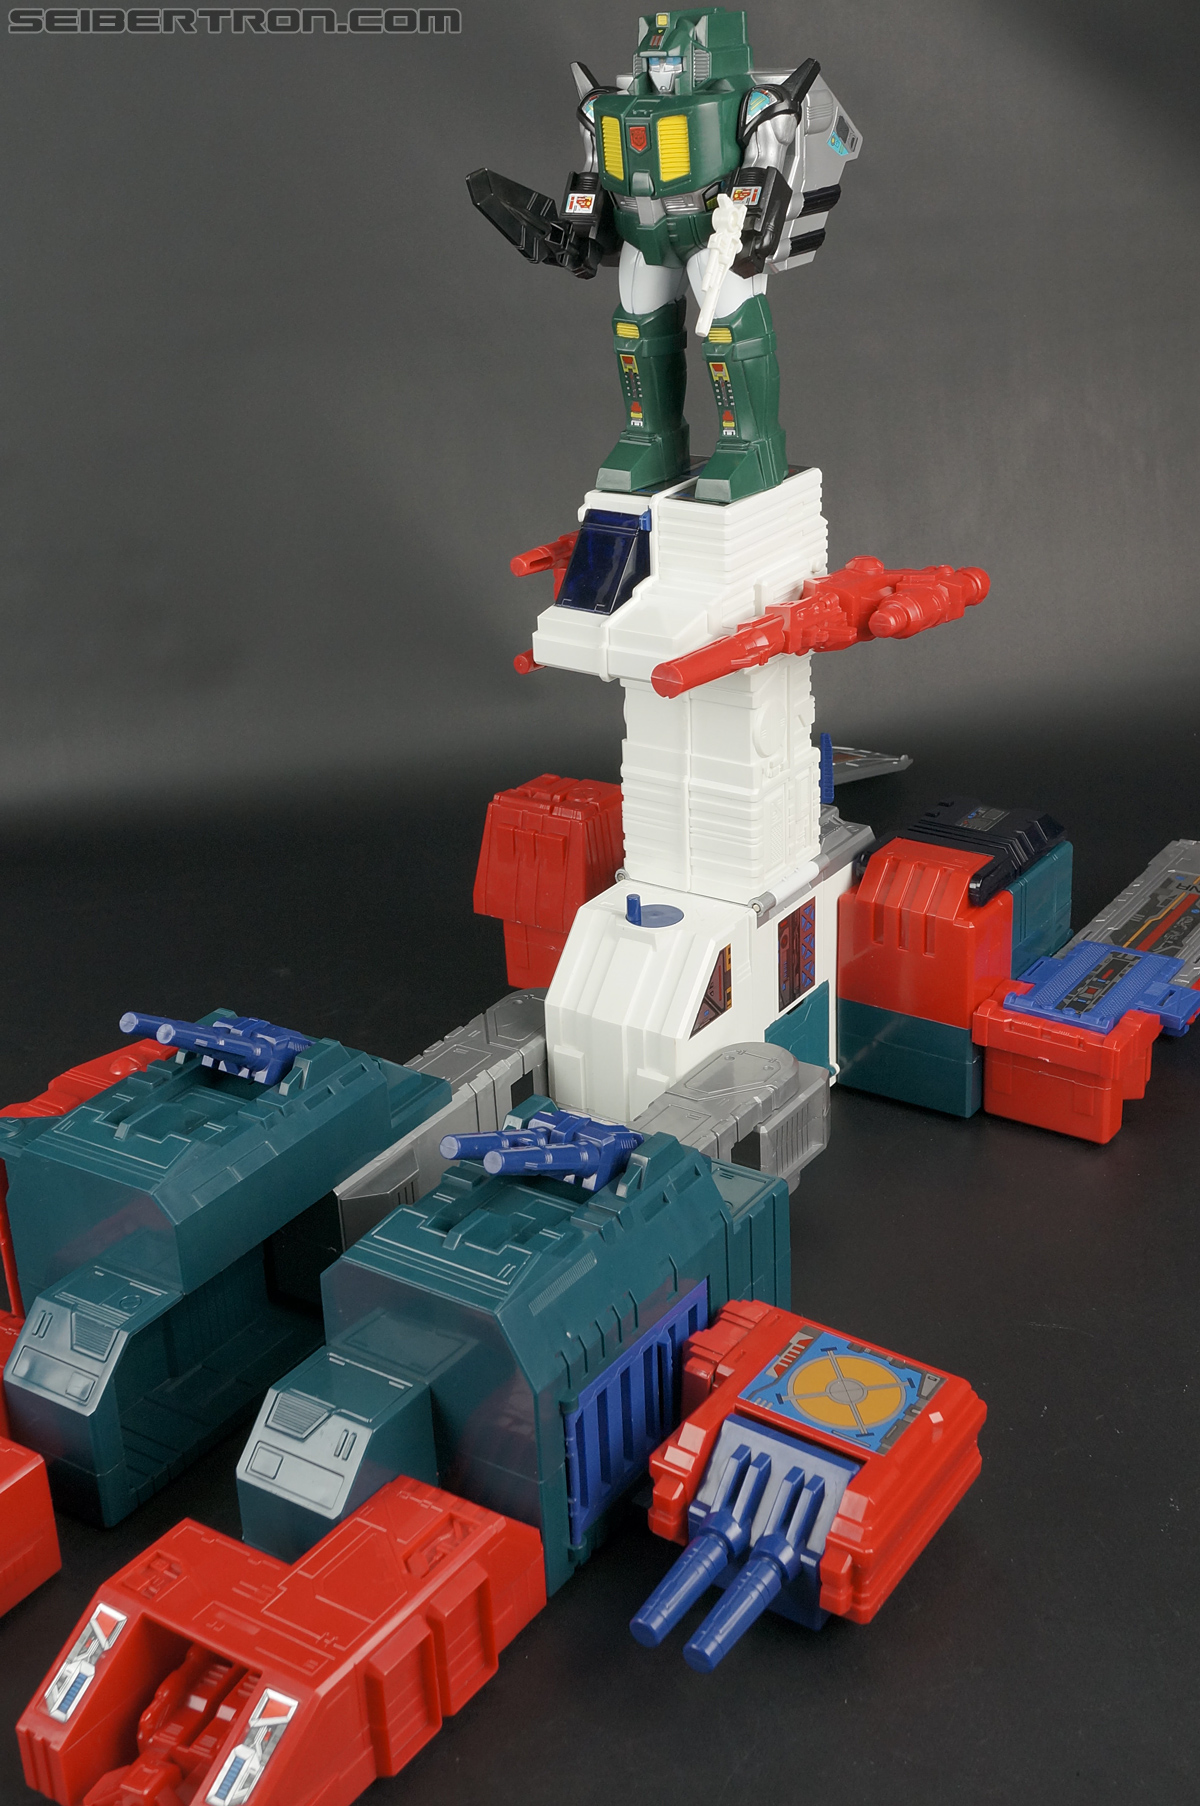 Transformers Super God Masterforce Grand Maximus (Image #159 of 335)